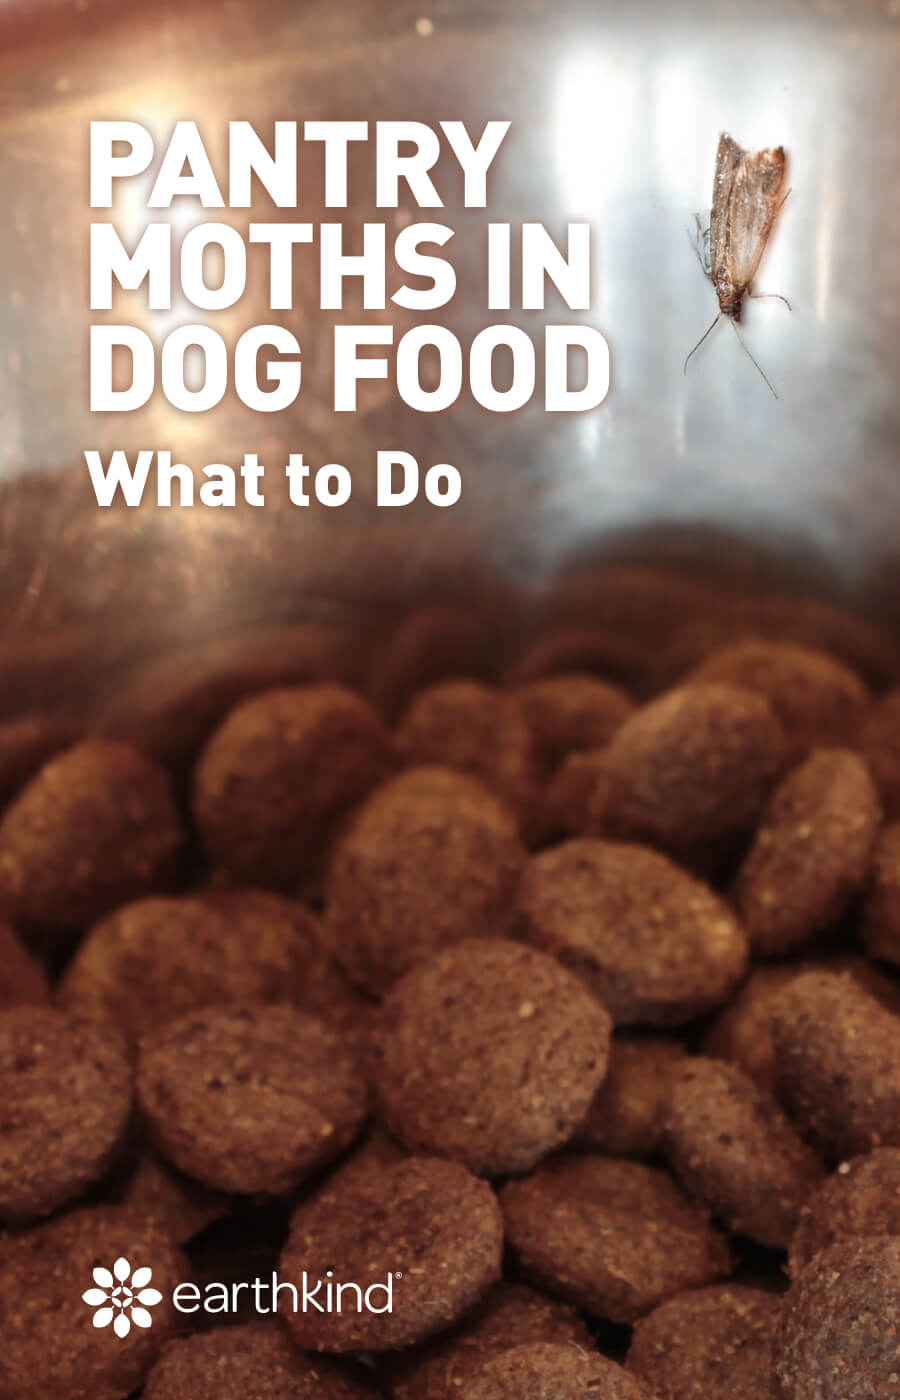 What to do about pantry moths in dog food and other pet food?